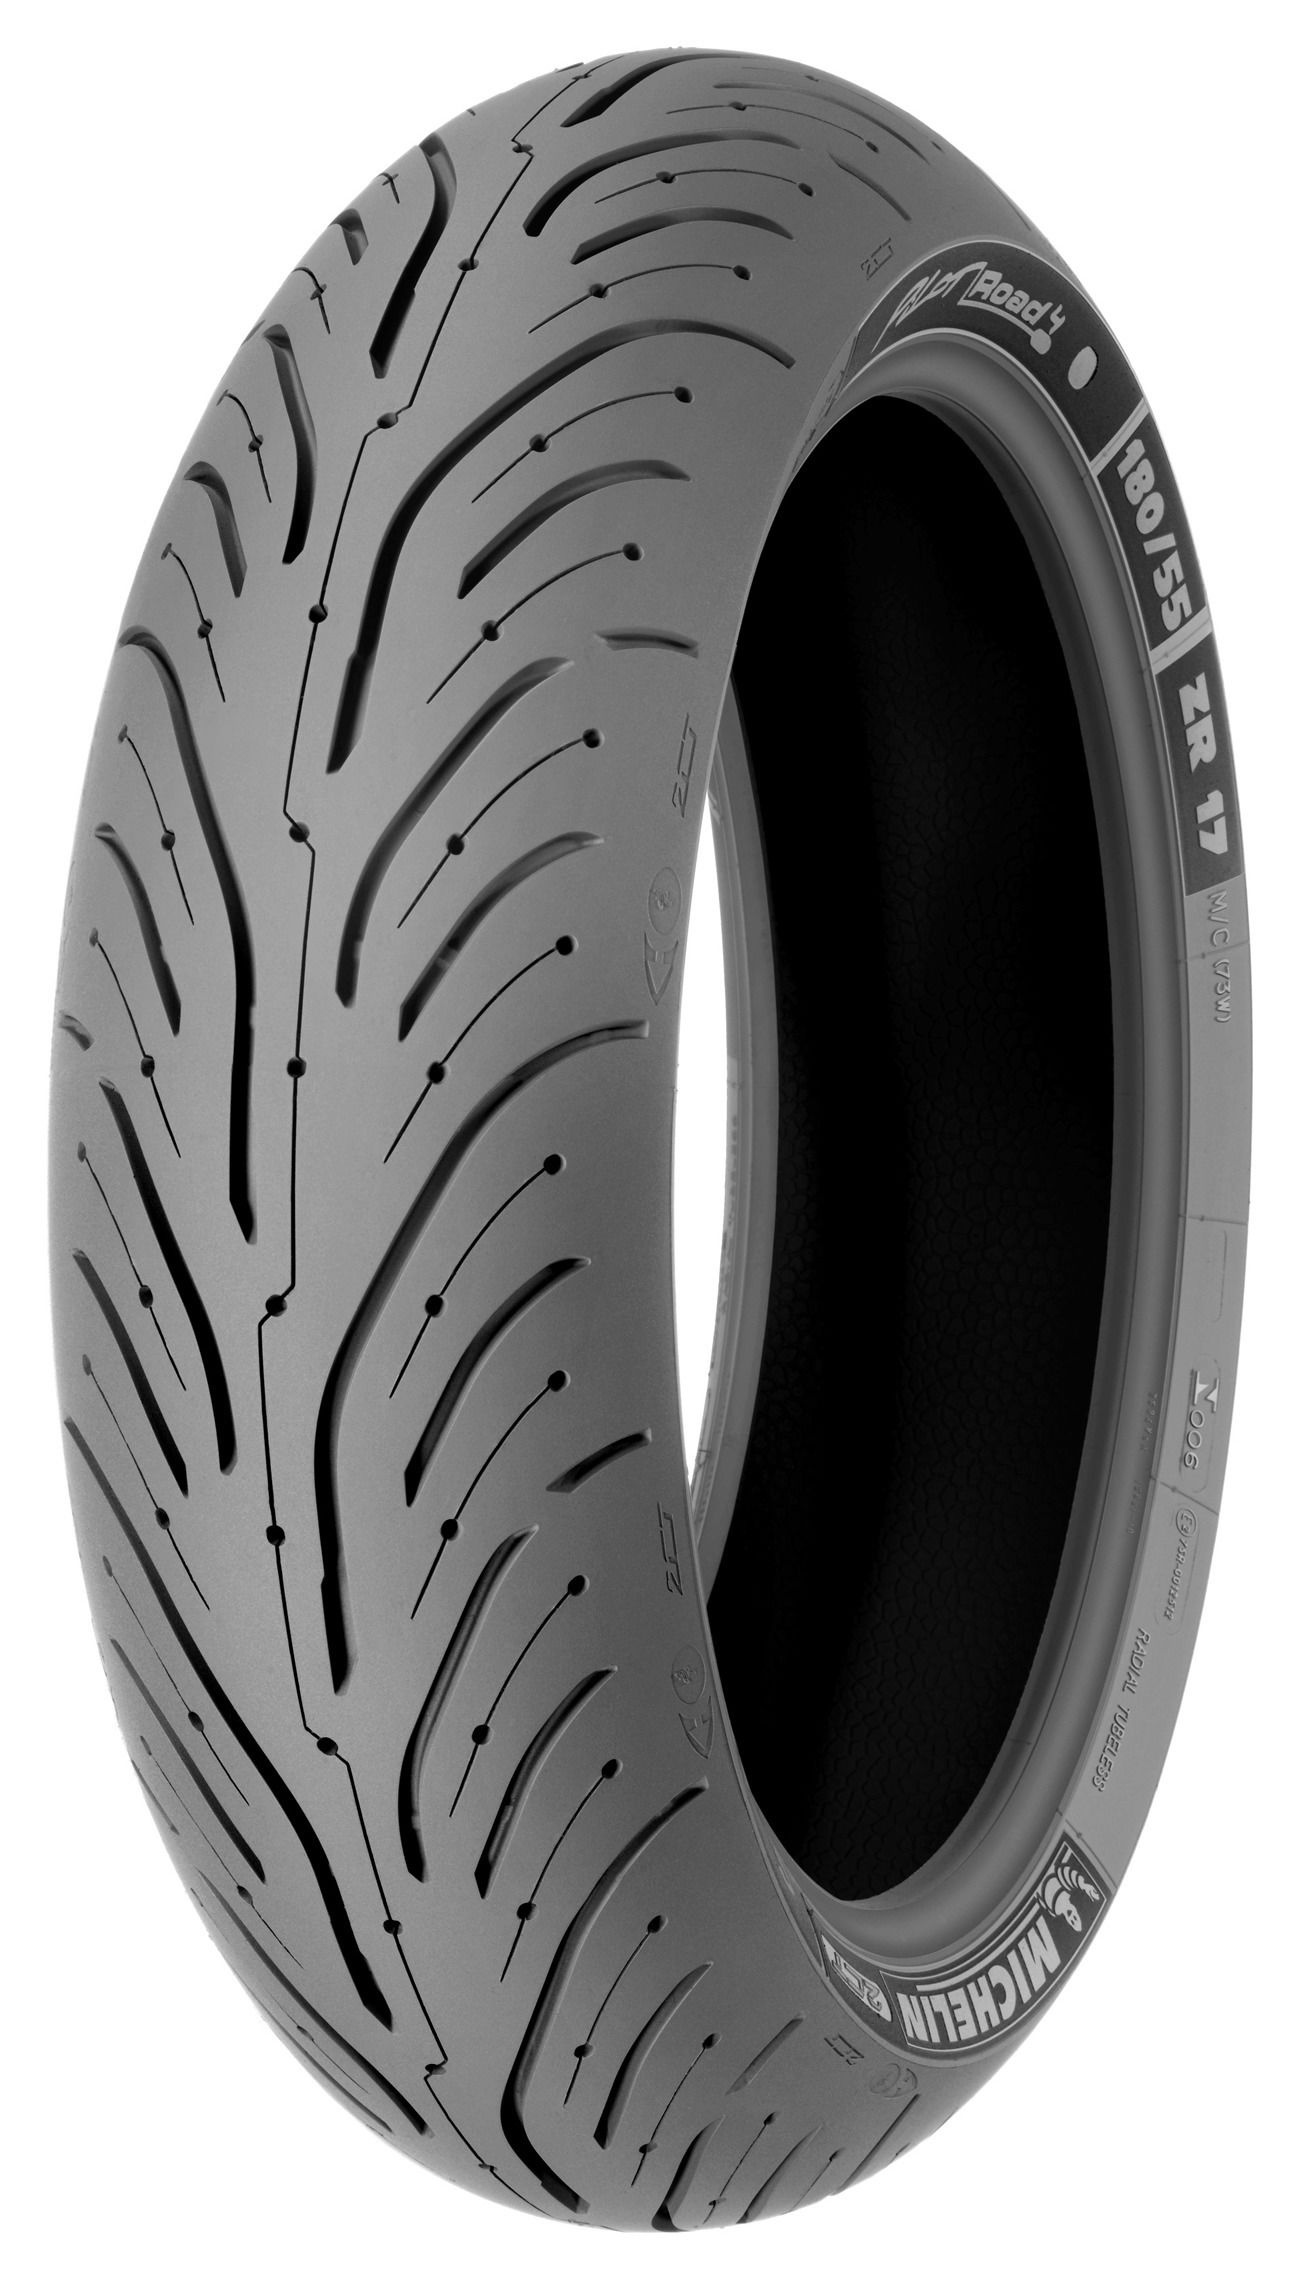 michelin pilot road 4 gt tires | 37% ($93.16) off! - revzilla